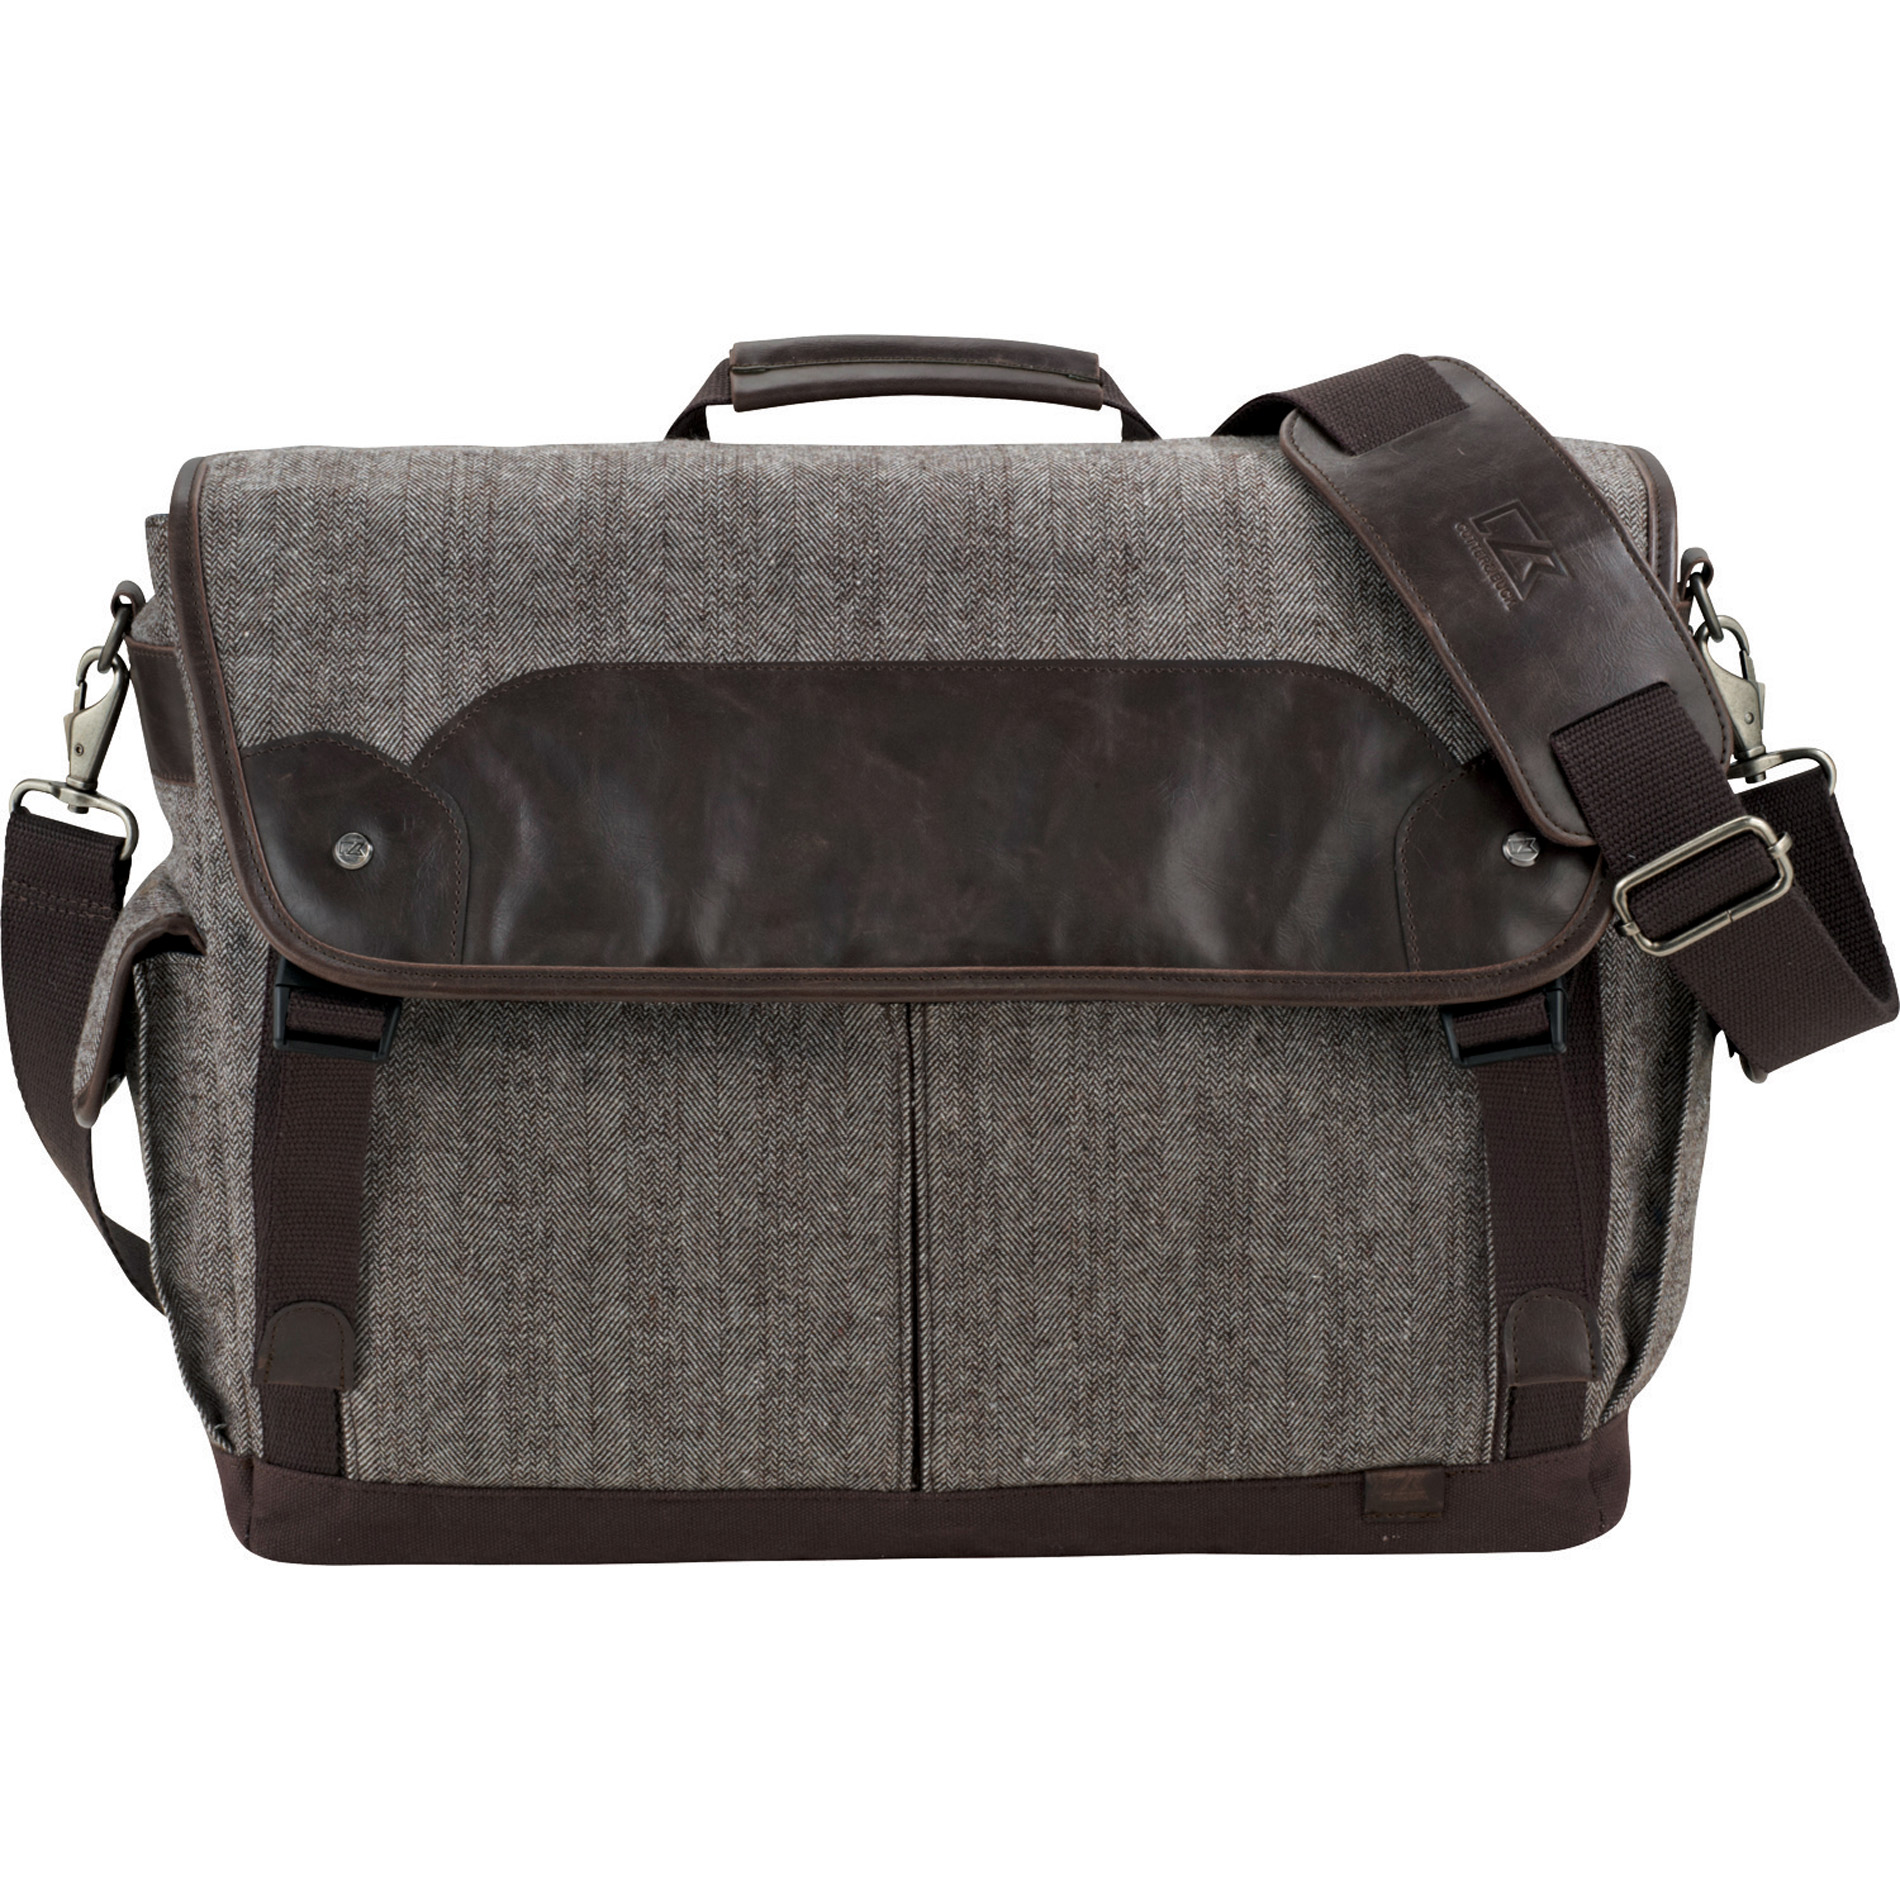 "Cutter & Buck 9810-41 - Pacific 17"" Computer Messenger Bag"